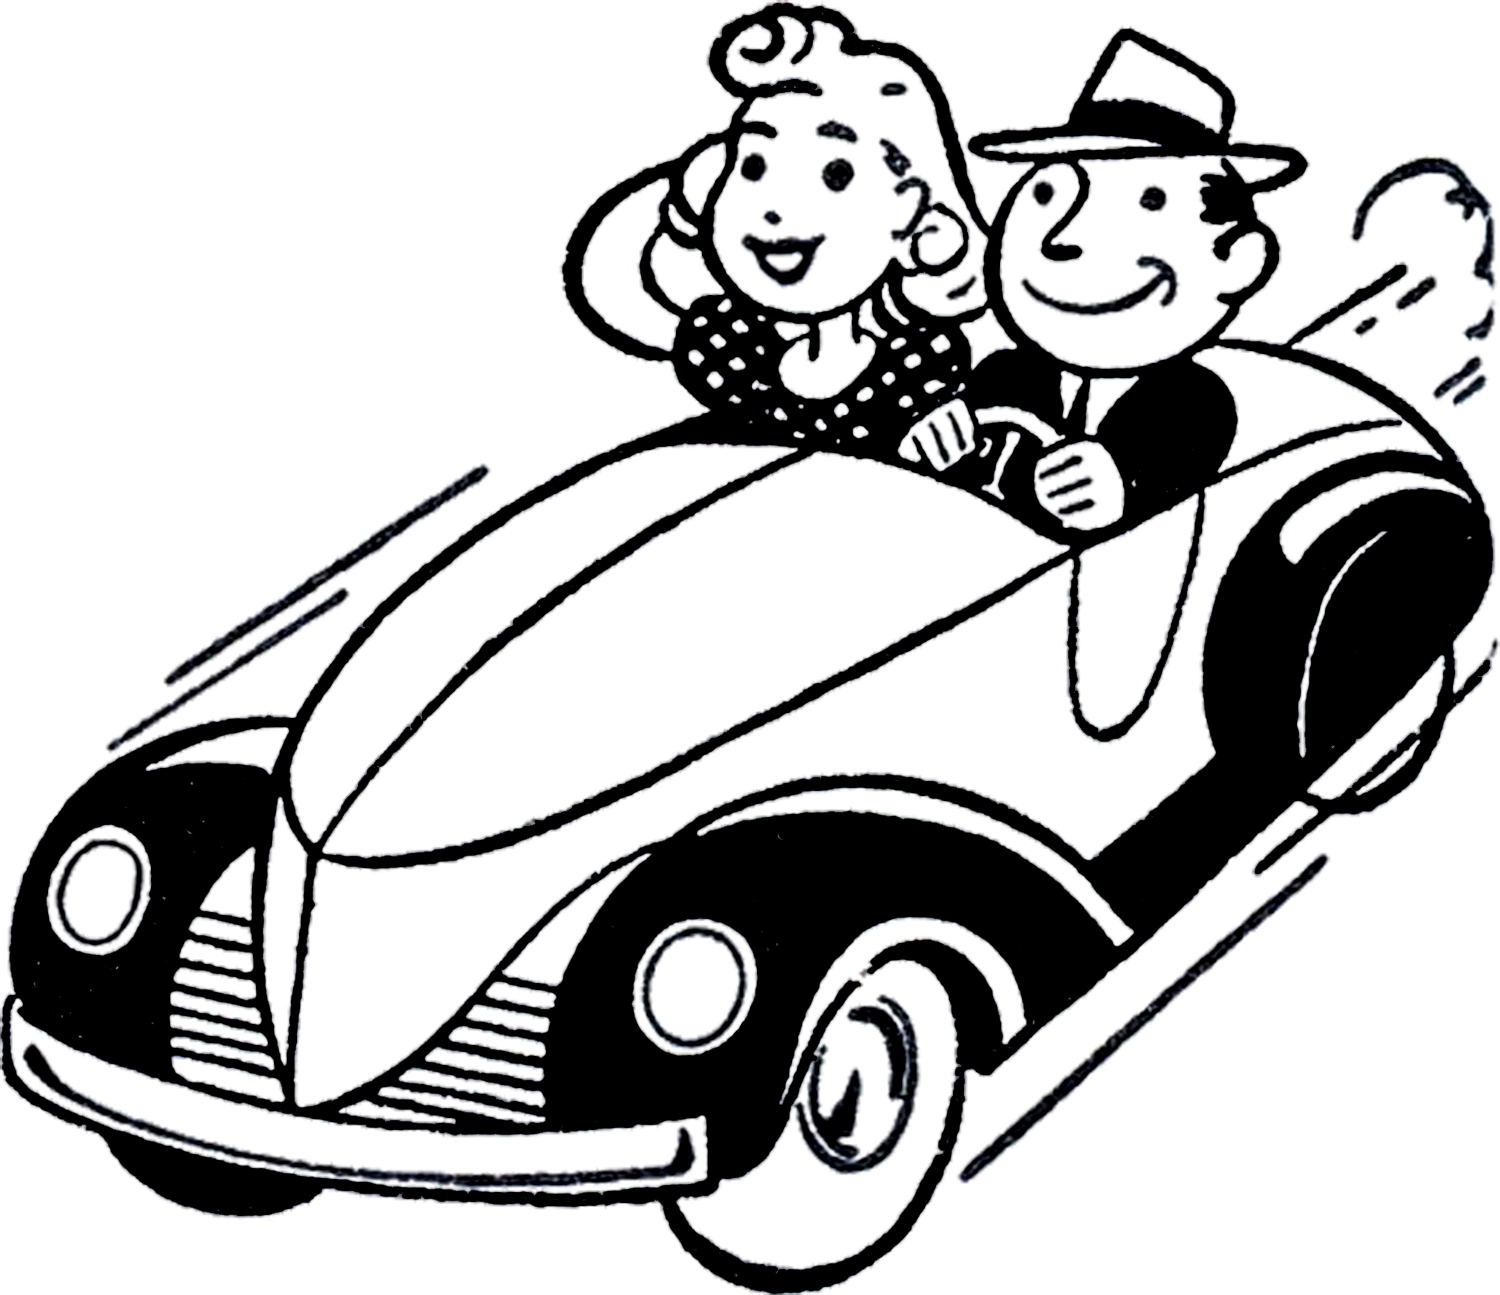 Vintage roadtrip clipart